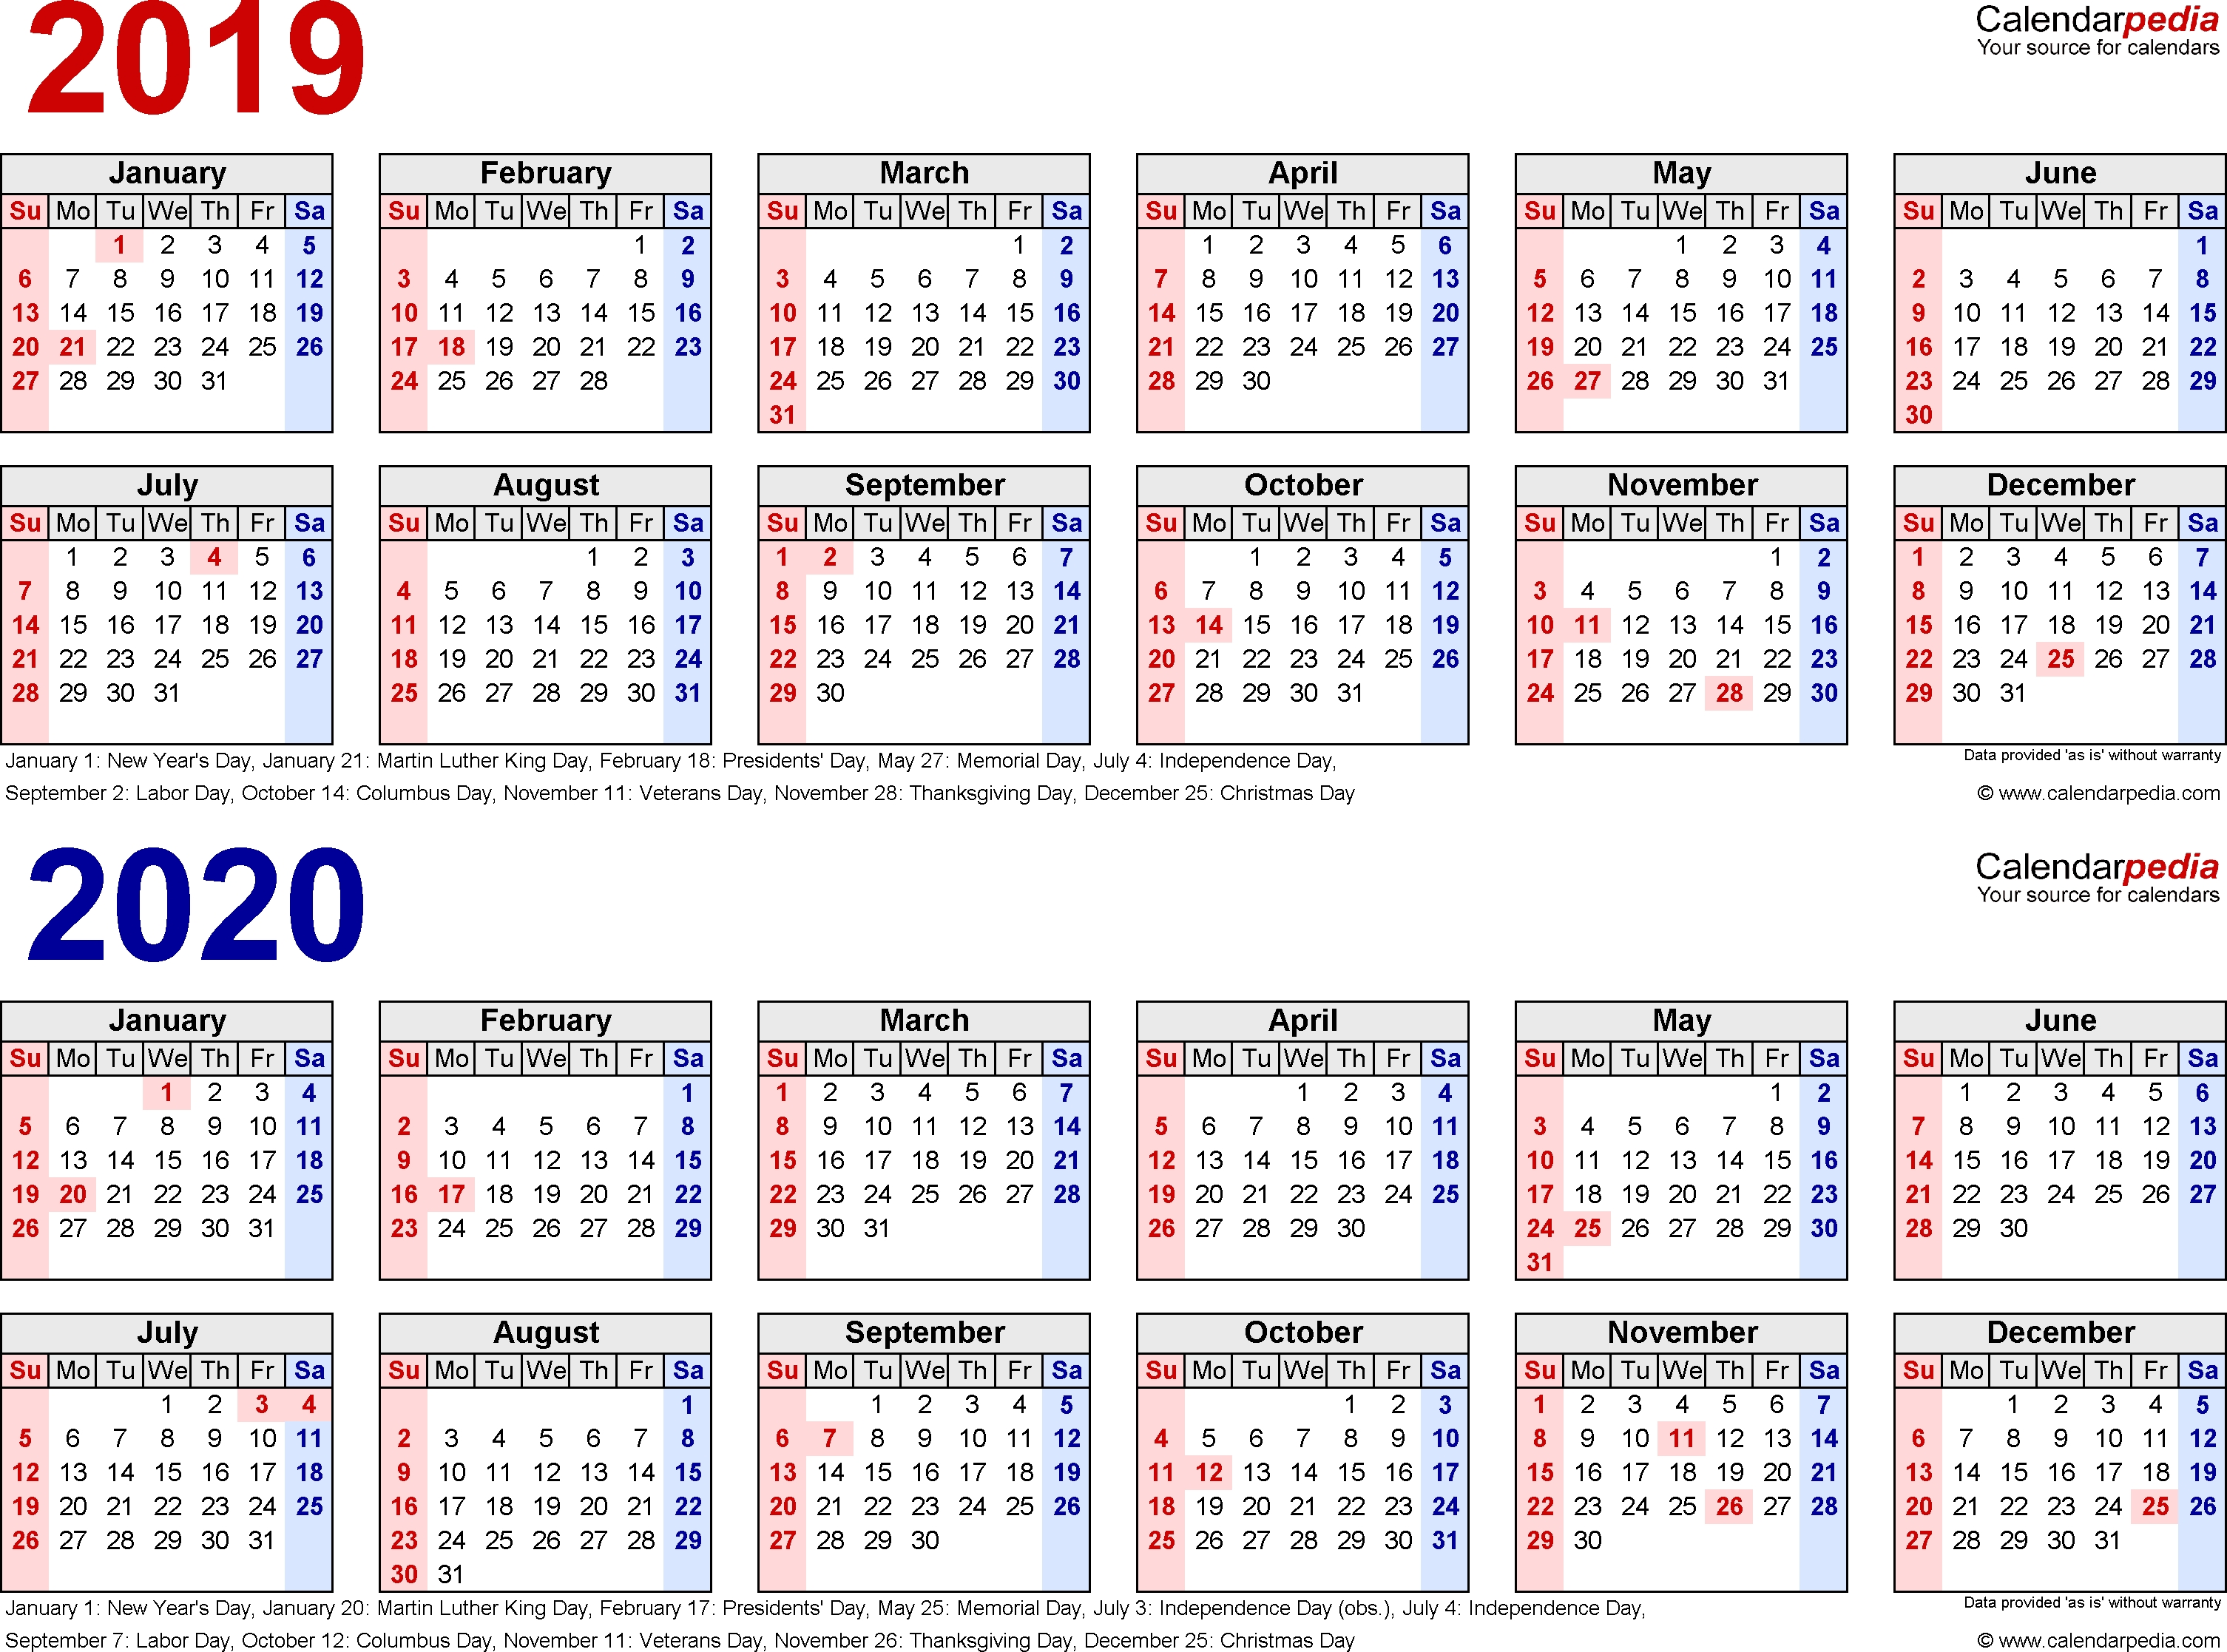 2019-2020 Calendar - Free Printable Two-Year Pdf Calendars with 1 Page Calendar 2019-2020 With Major Holidays